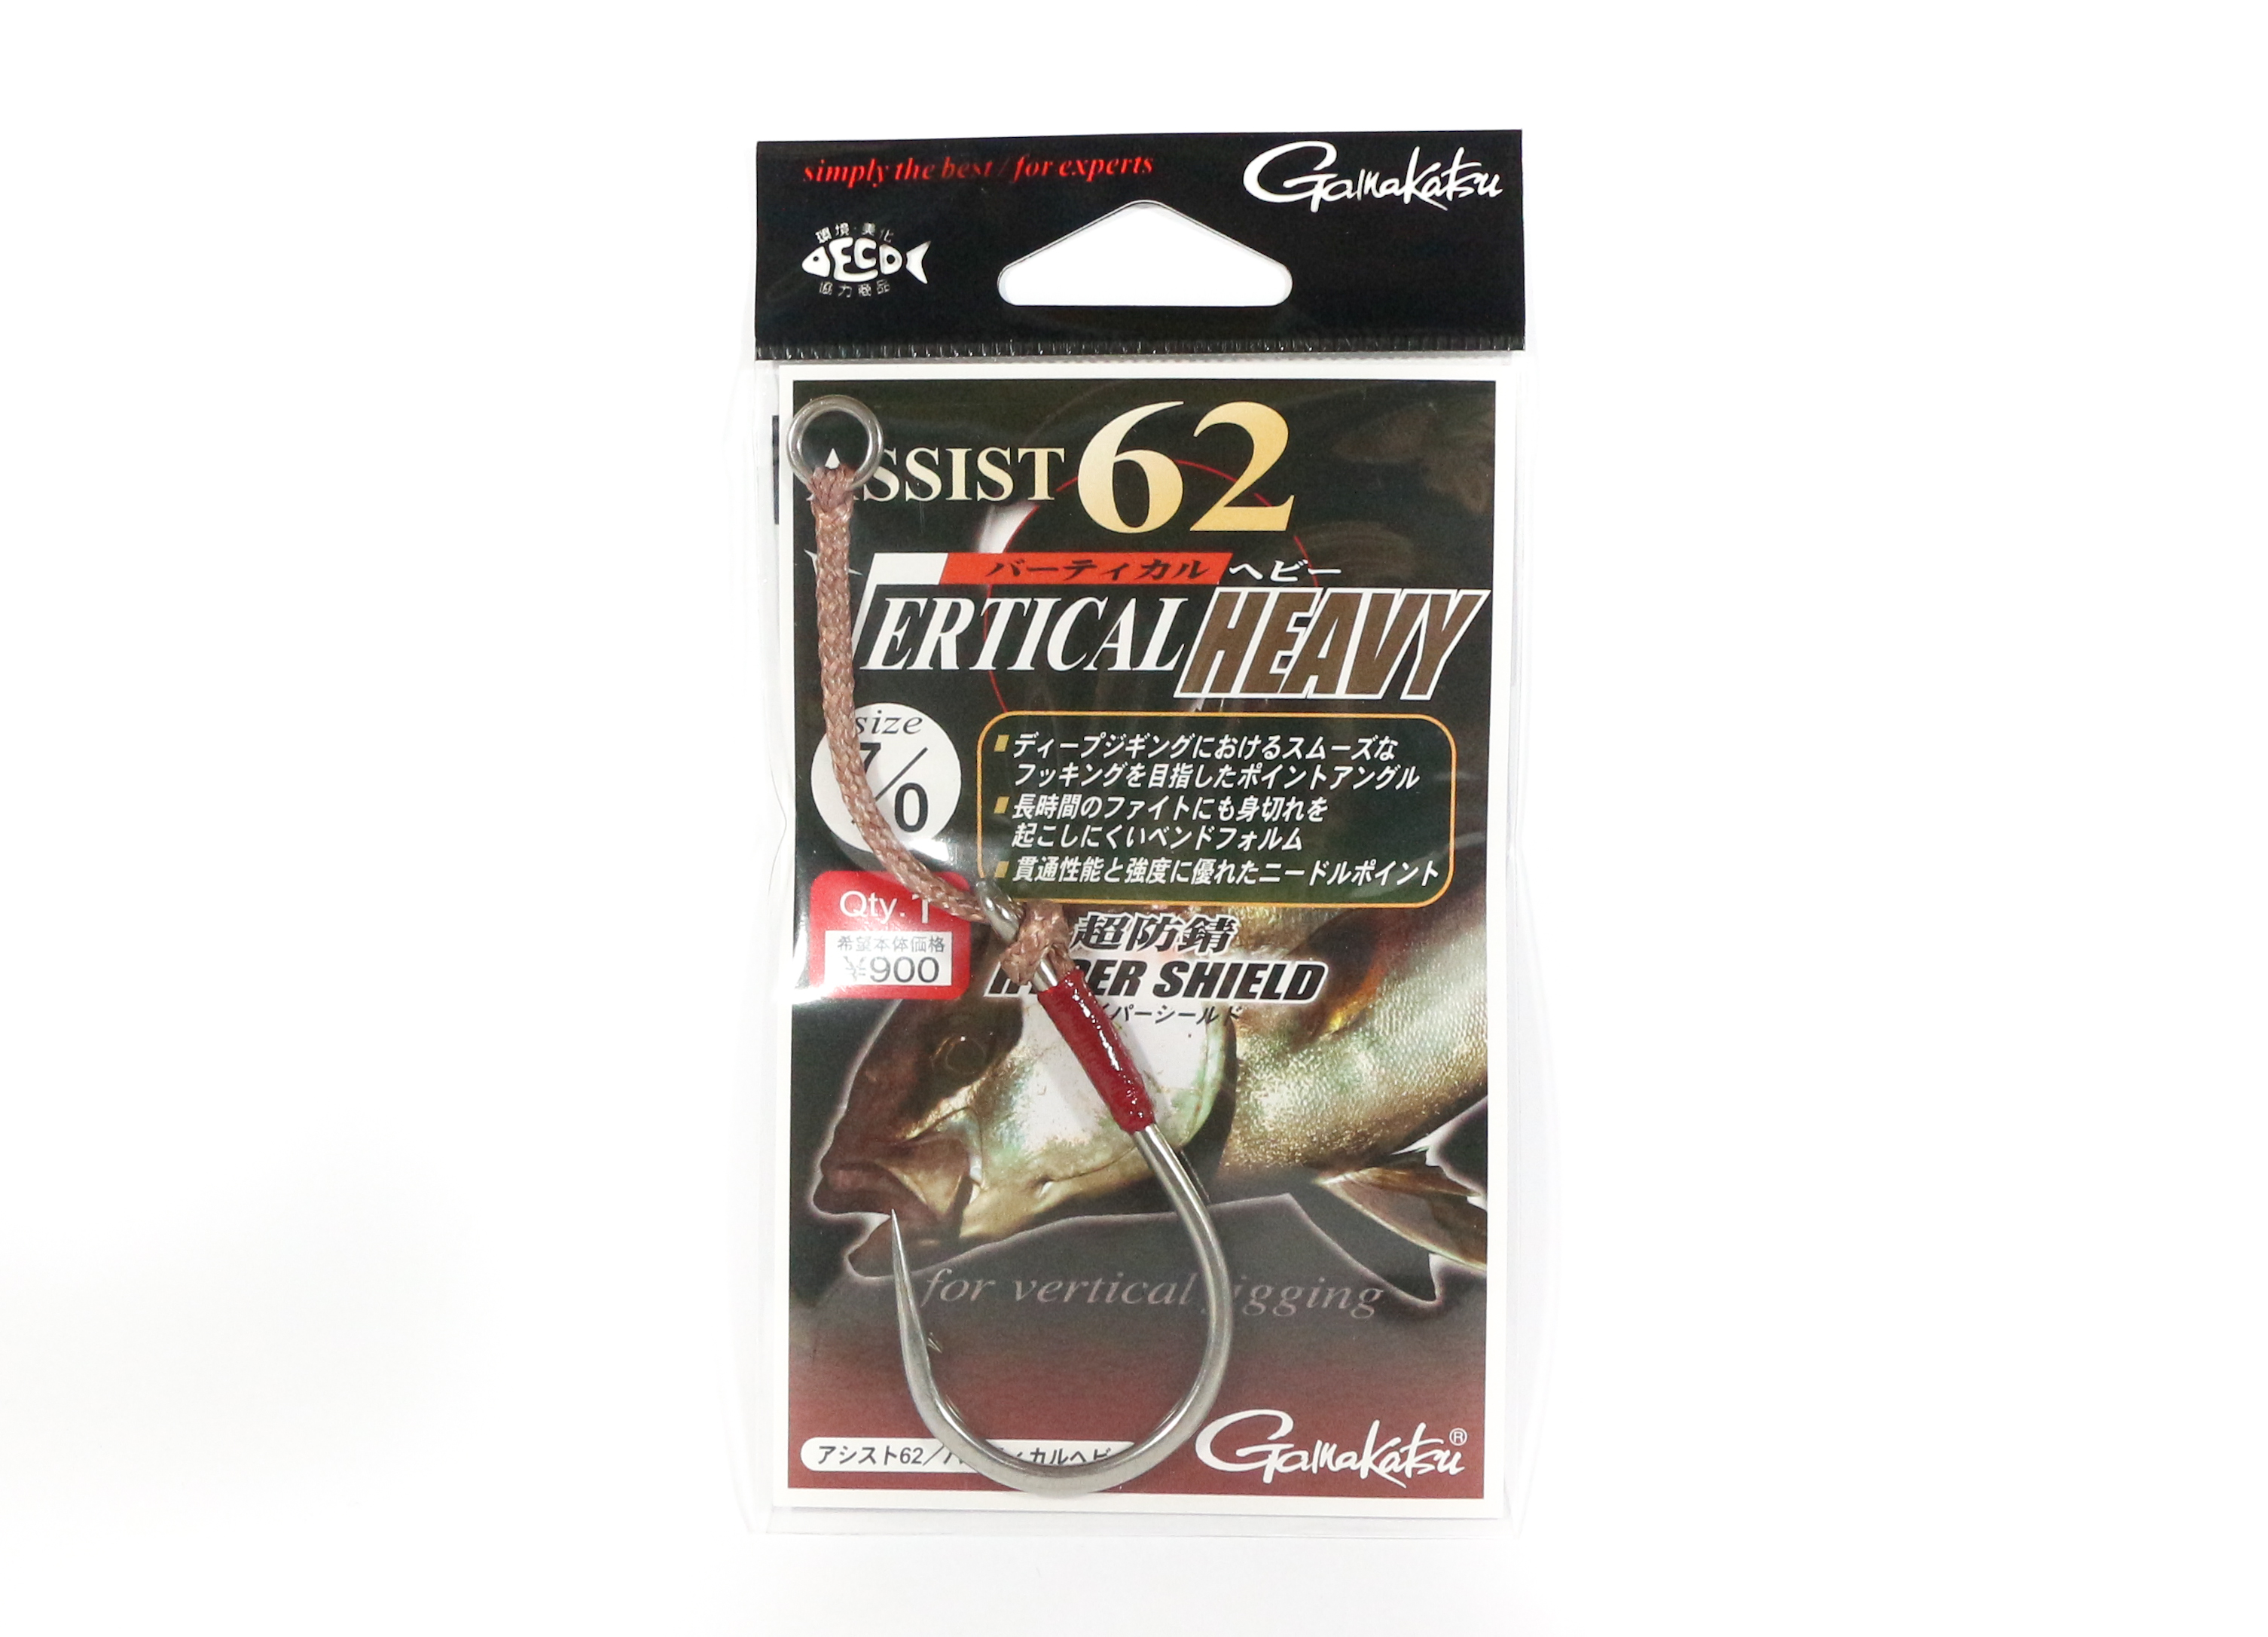 Sale Gamakatsu Assist 62 Vertical Heavy Jigging Hook Size 7/0 (8942)